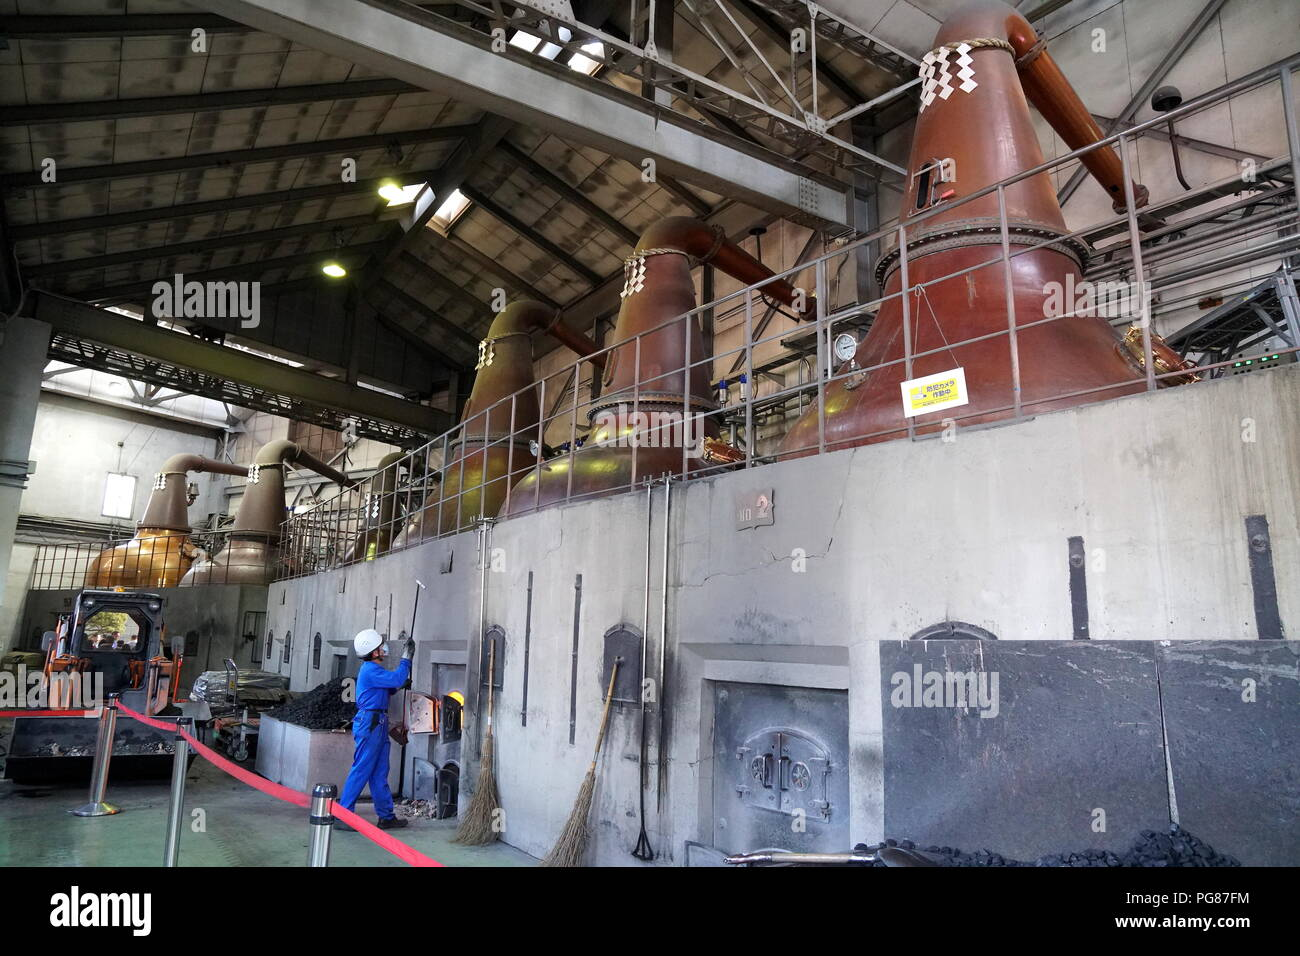 Hokkaido Asahi Beer Factory, Sapporo, Hokkaido, Japan.  A worker putting charcoal into the kiln with the impressive stills looming above. - Stock Image